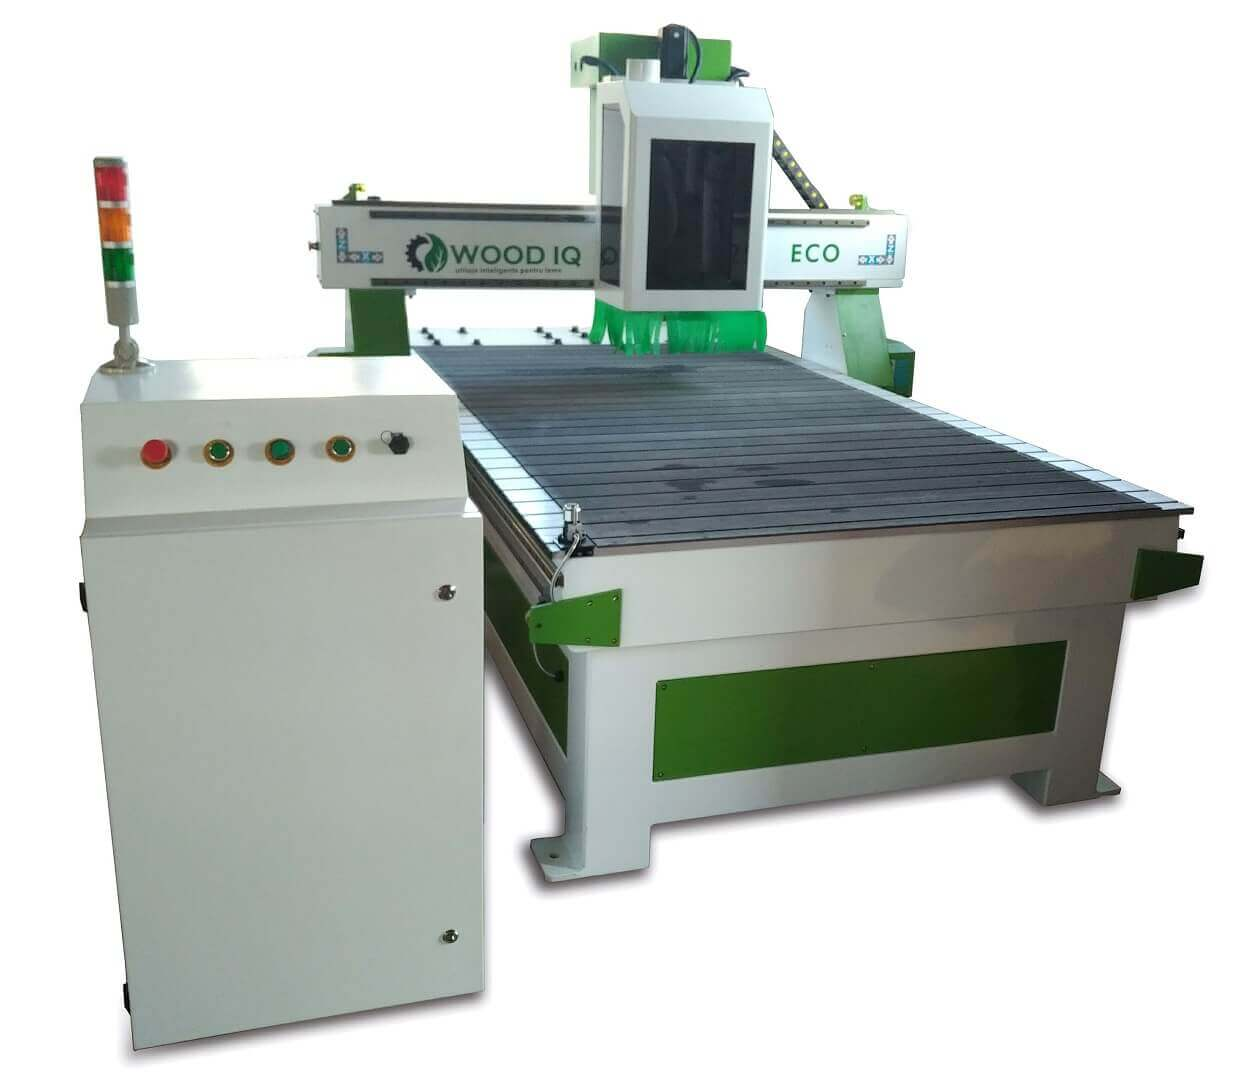 Router CNC 1325 Eco Wood IQ Romania